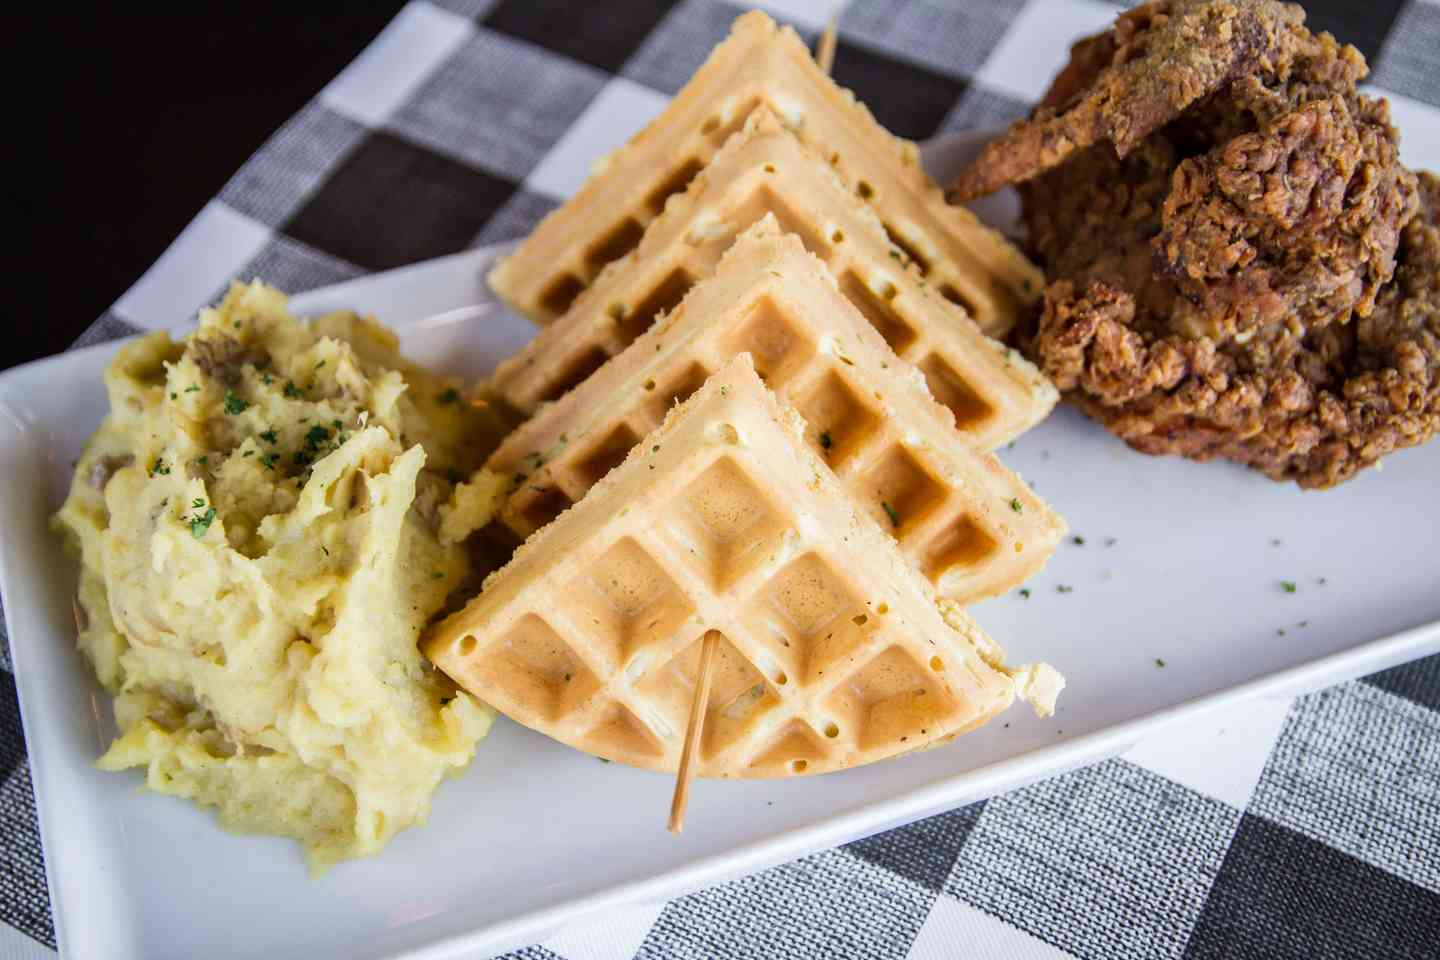 Farmhand Chicken & Waffles